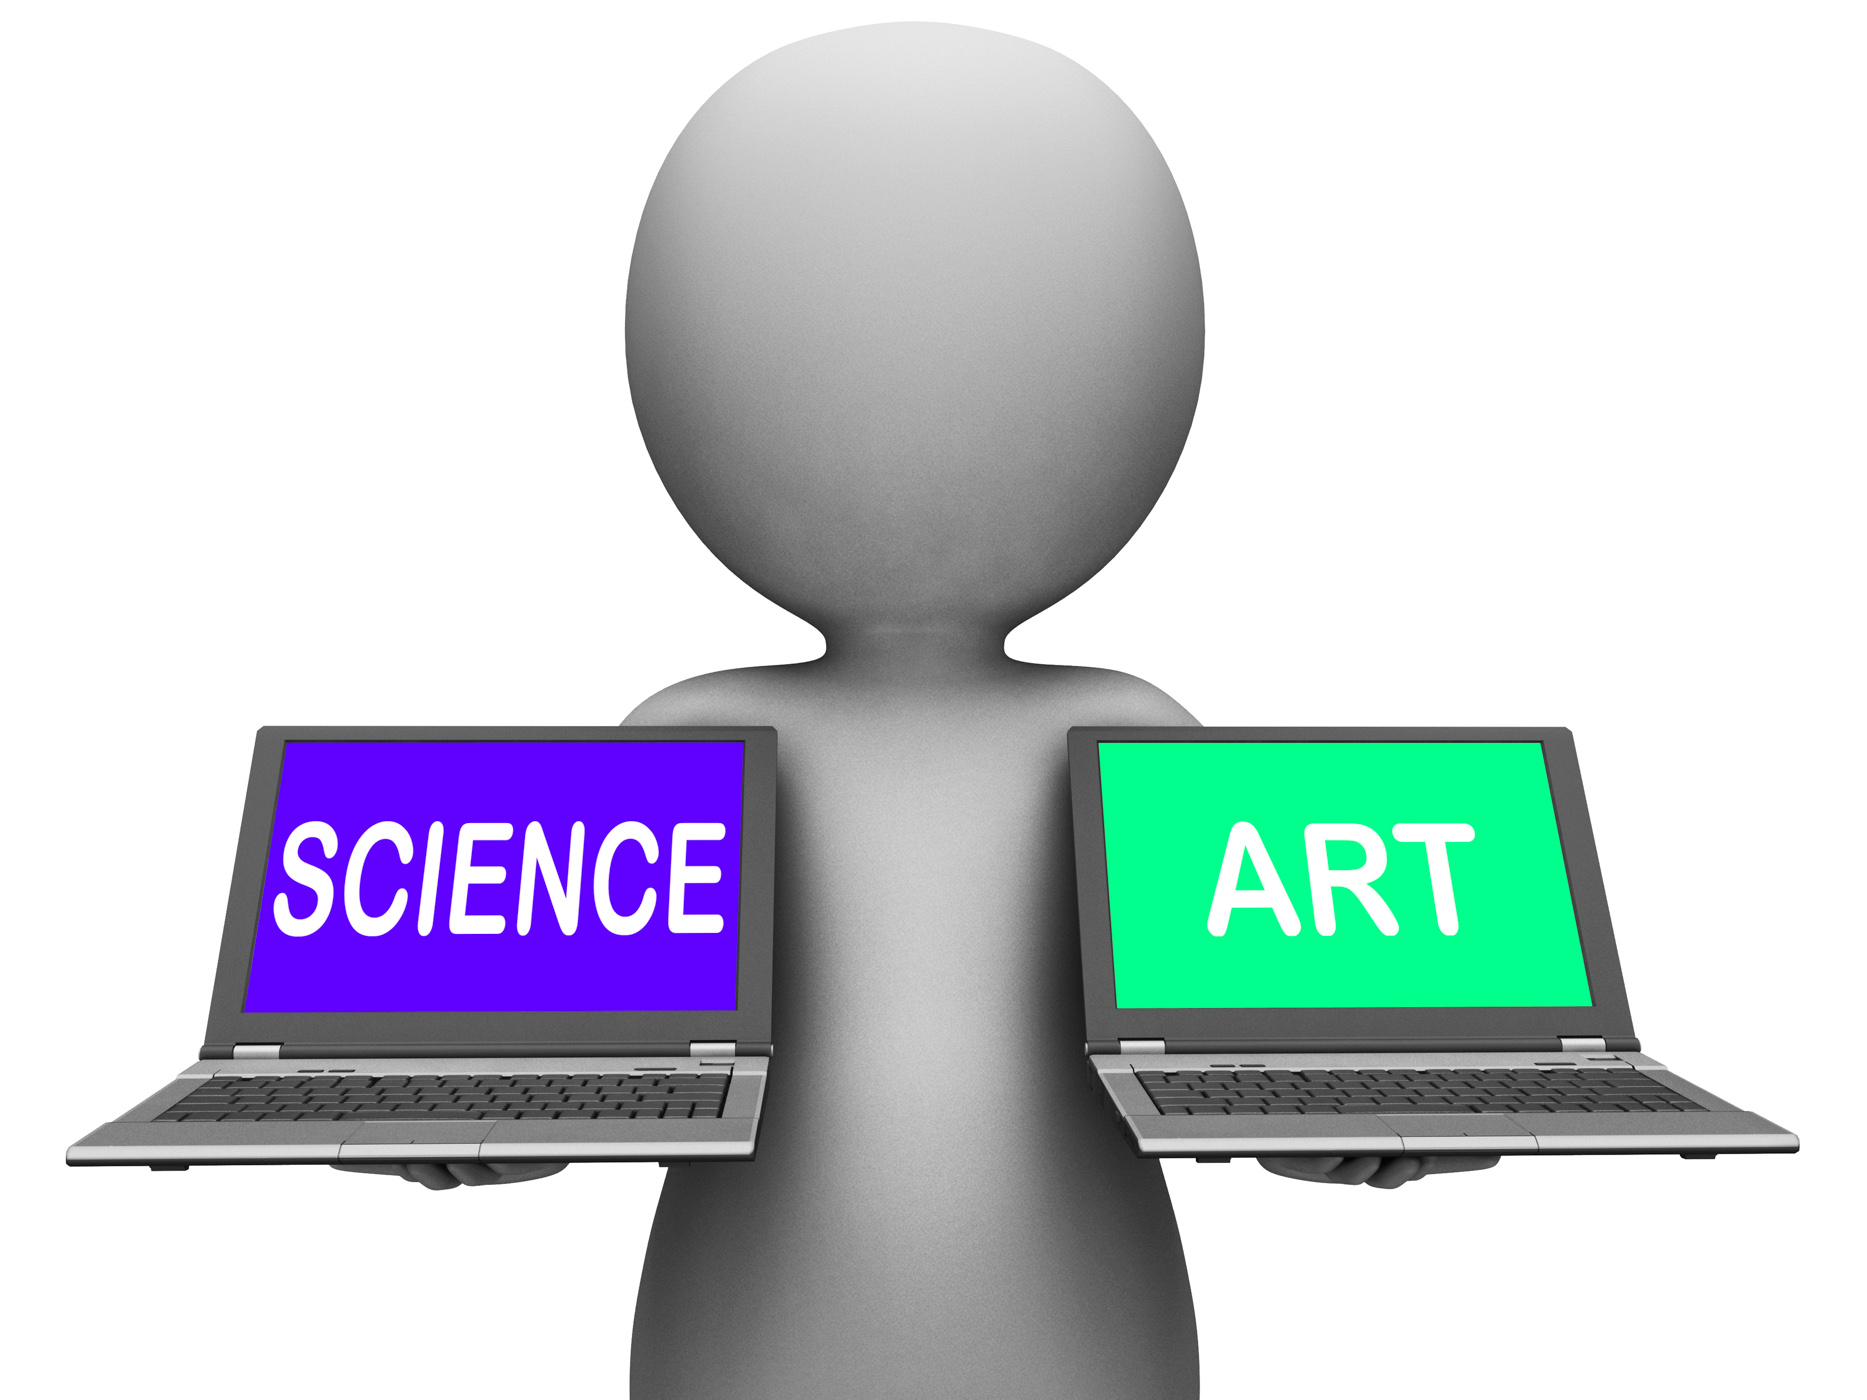 Science art laptops shows scientific or artistic photo